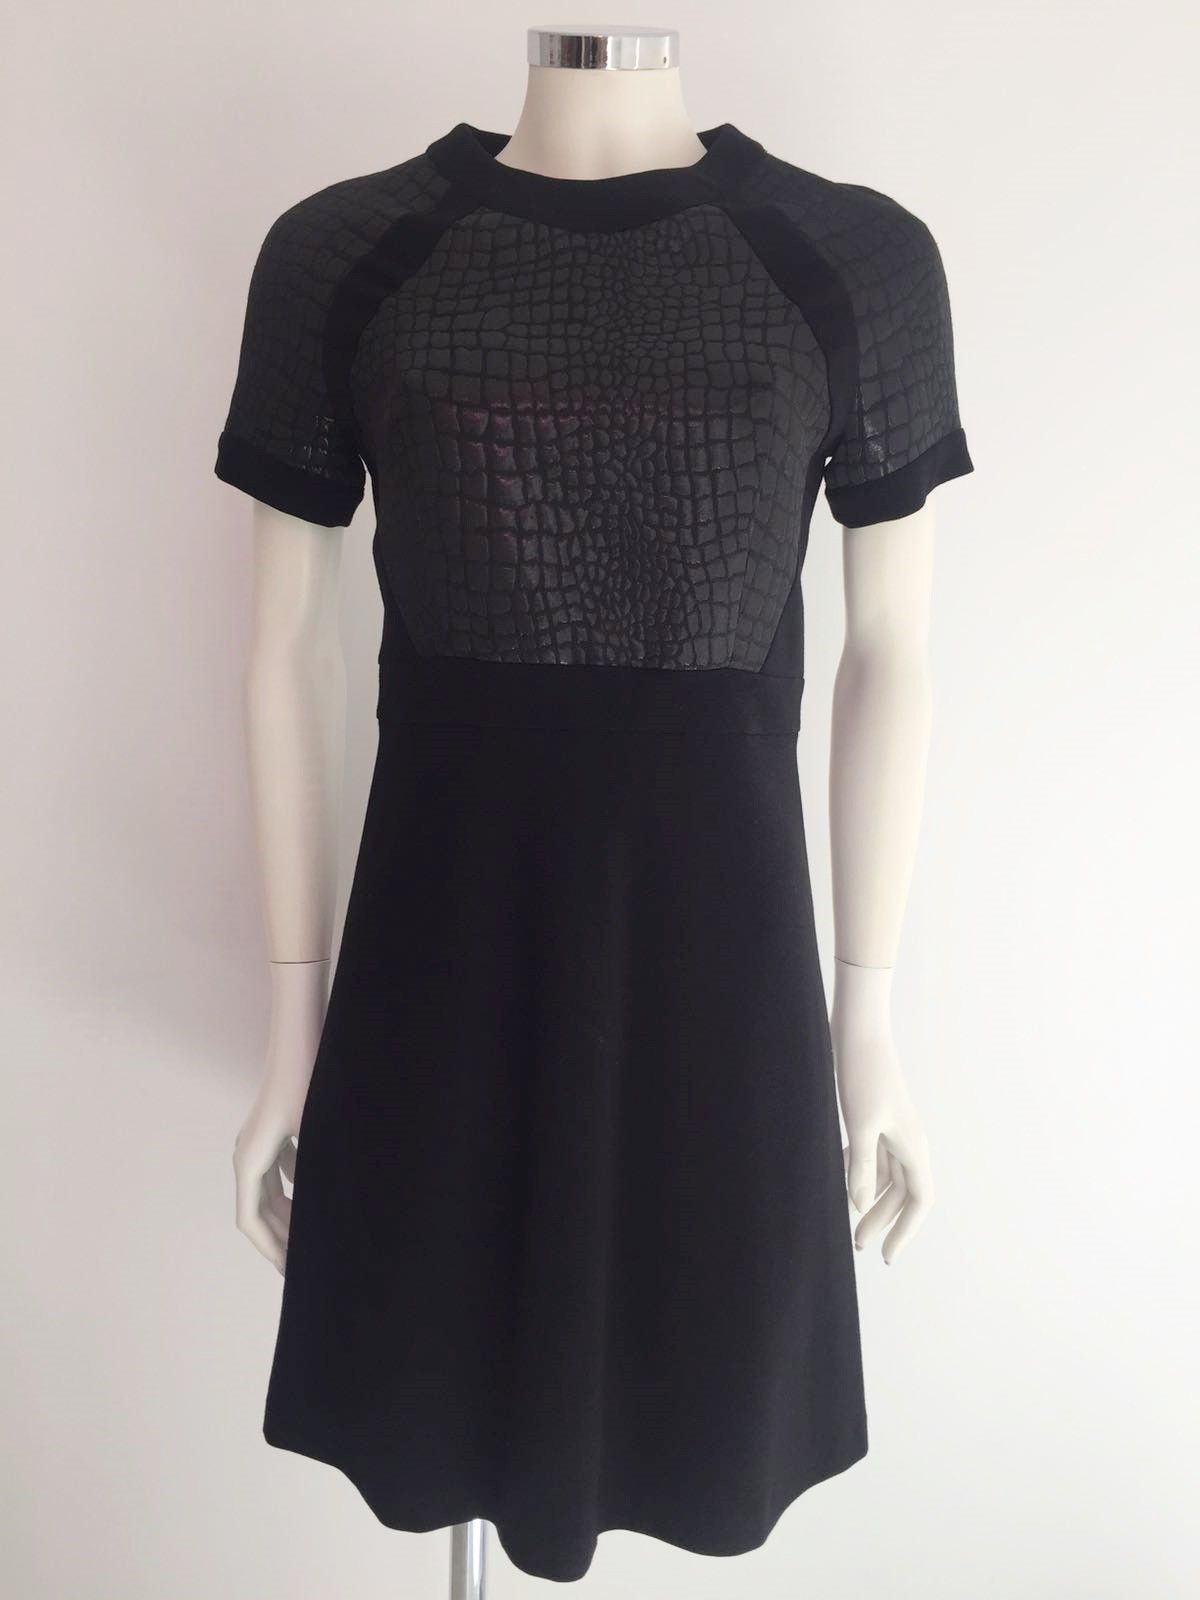 Emmjeilove Black Sleeved dress Cod.Alison